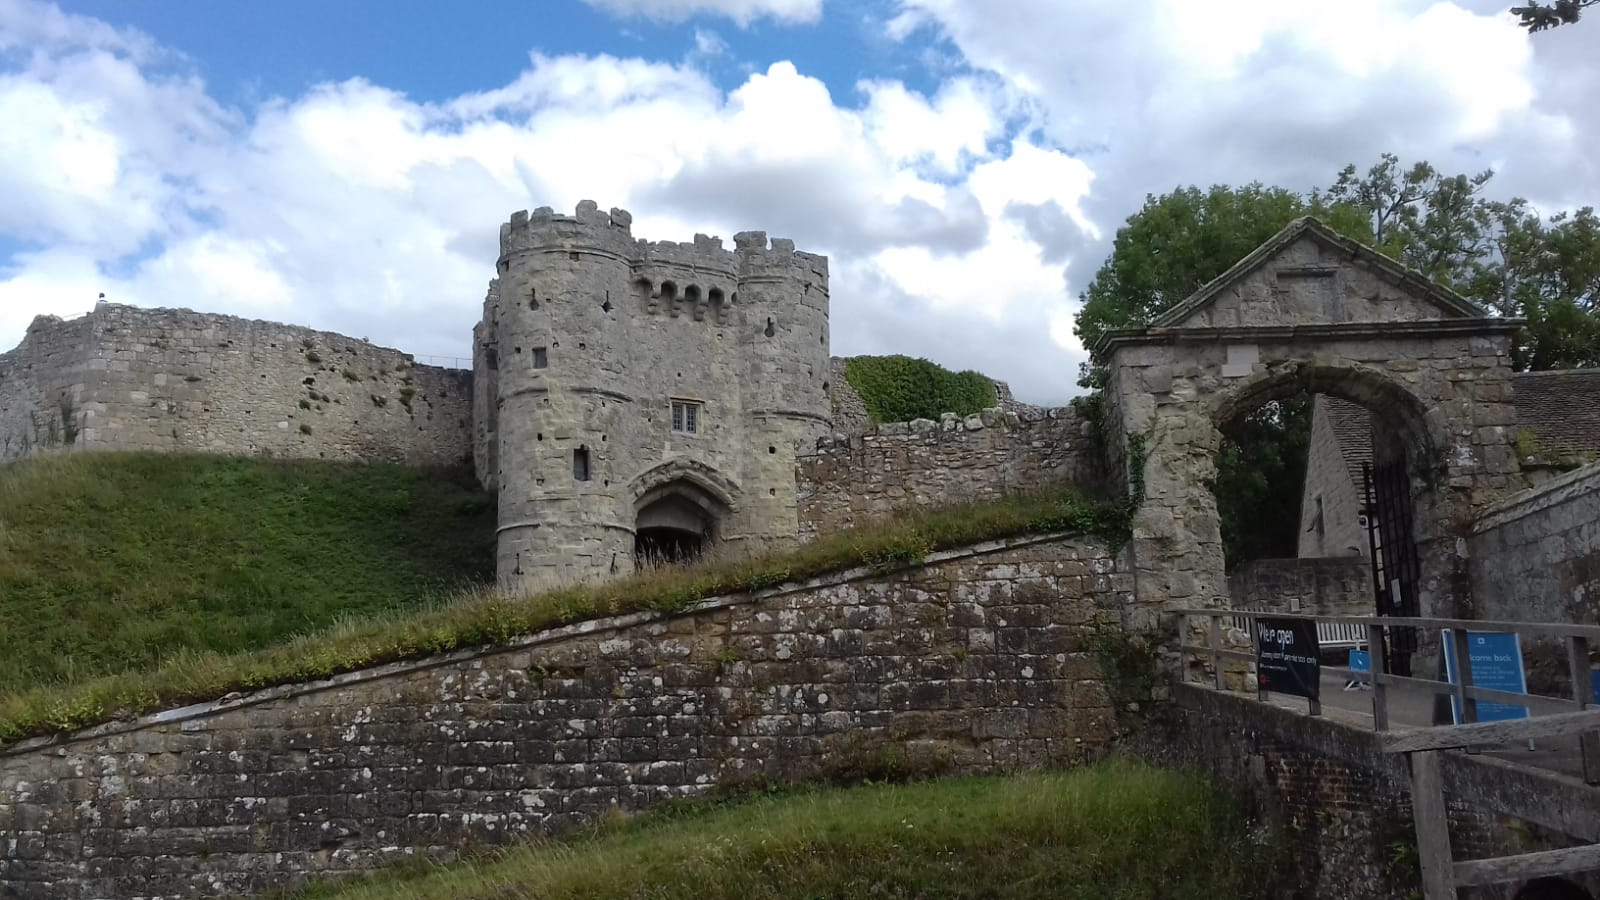 2020 Carisbrooke Castle 1 Aug 3.jpg